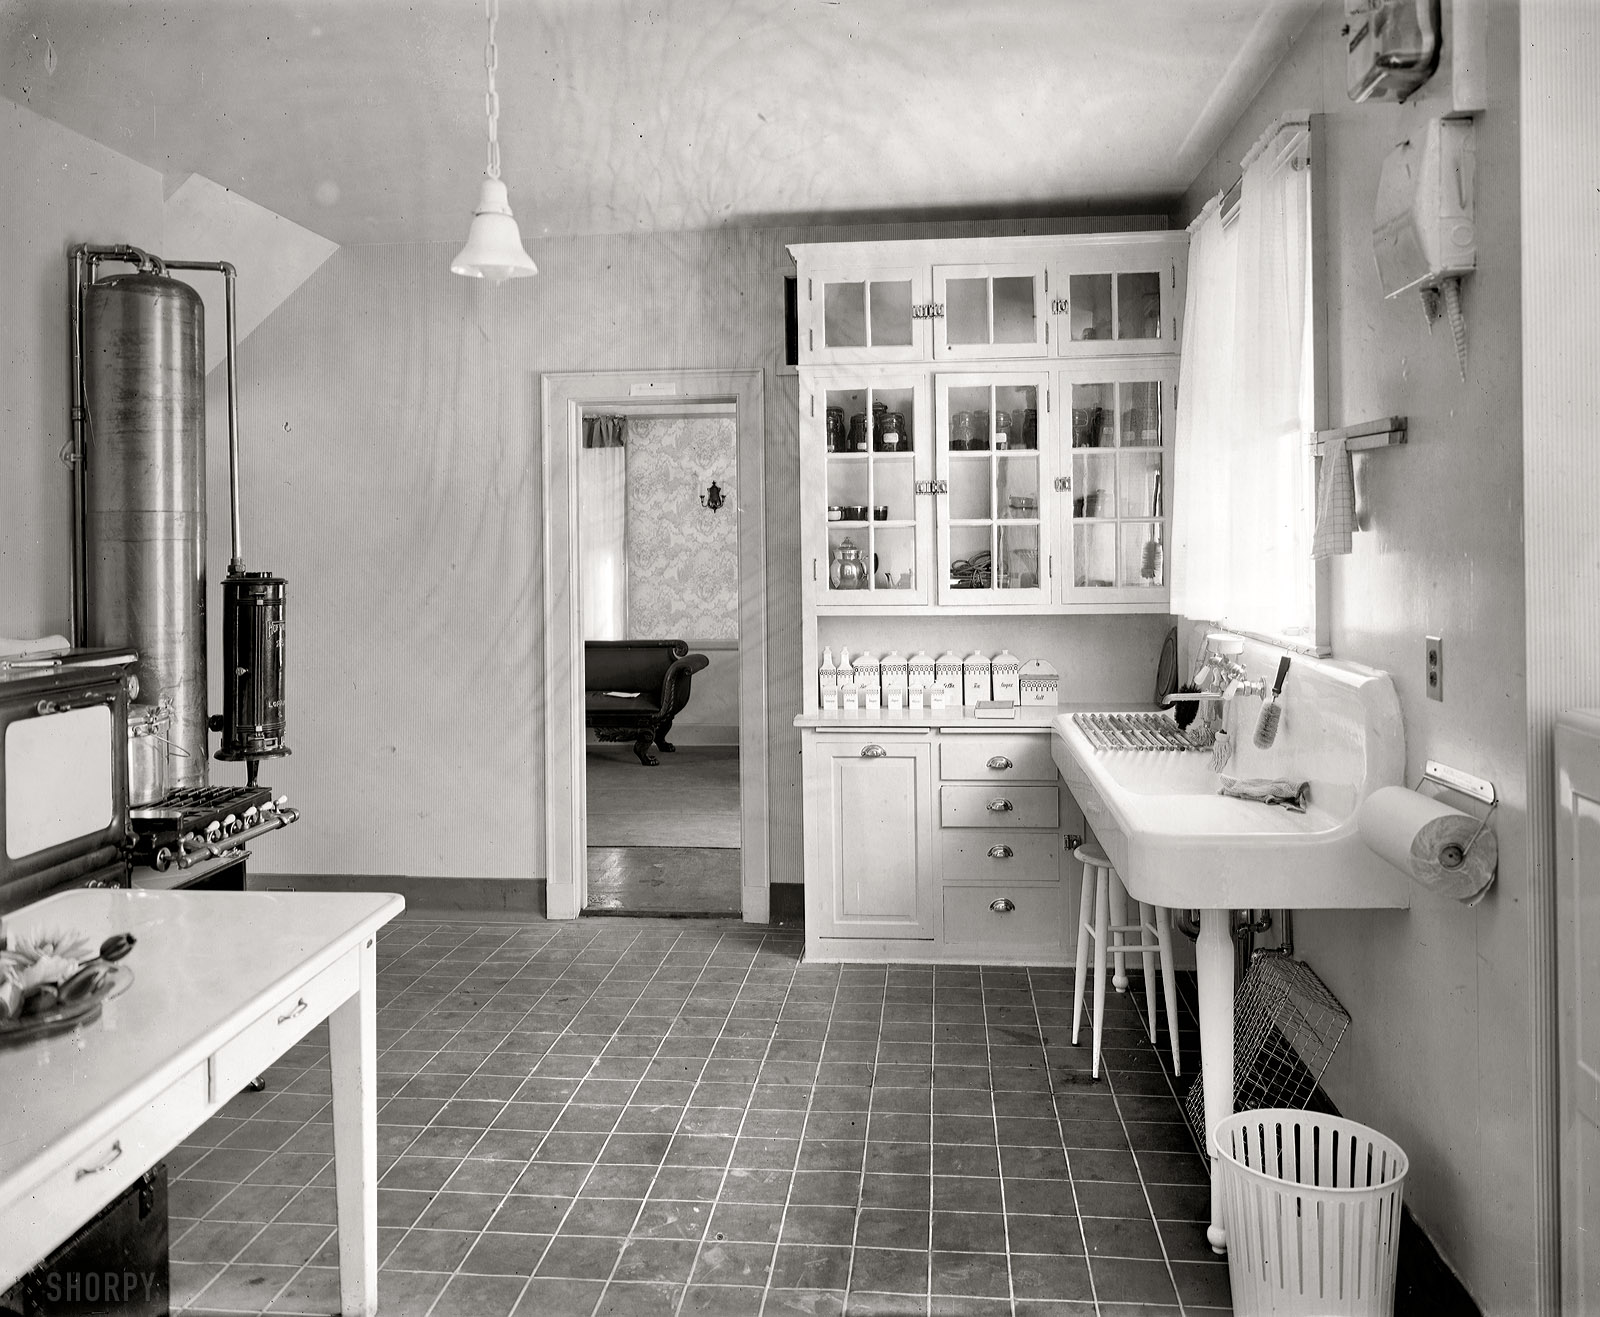 Shorpy historic picture archive restoration hardware for Bathroom ideas 1920s home